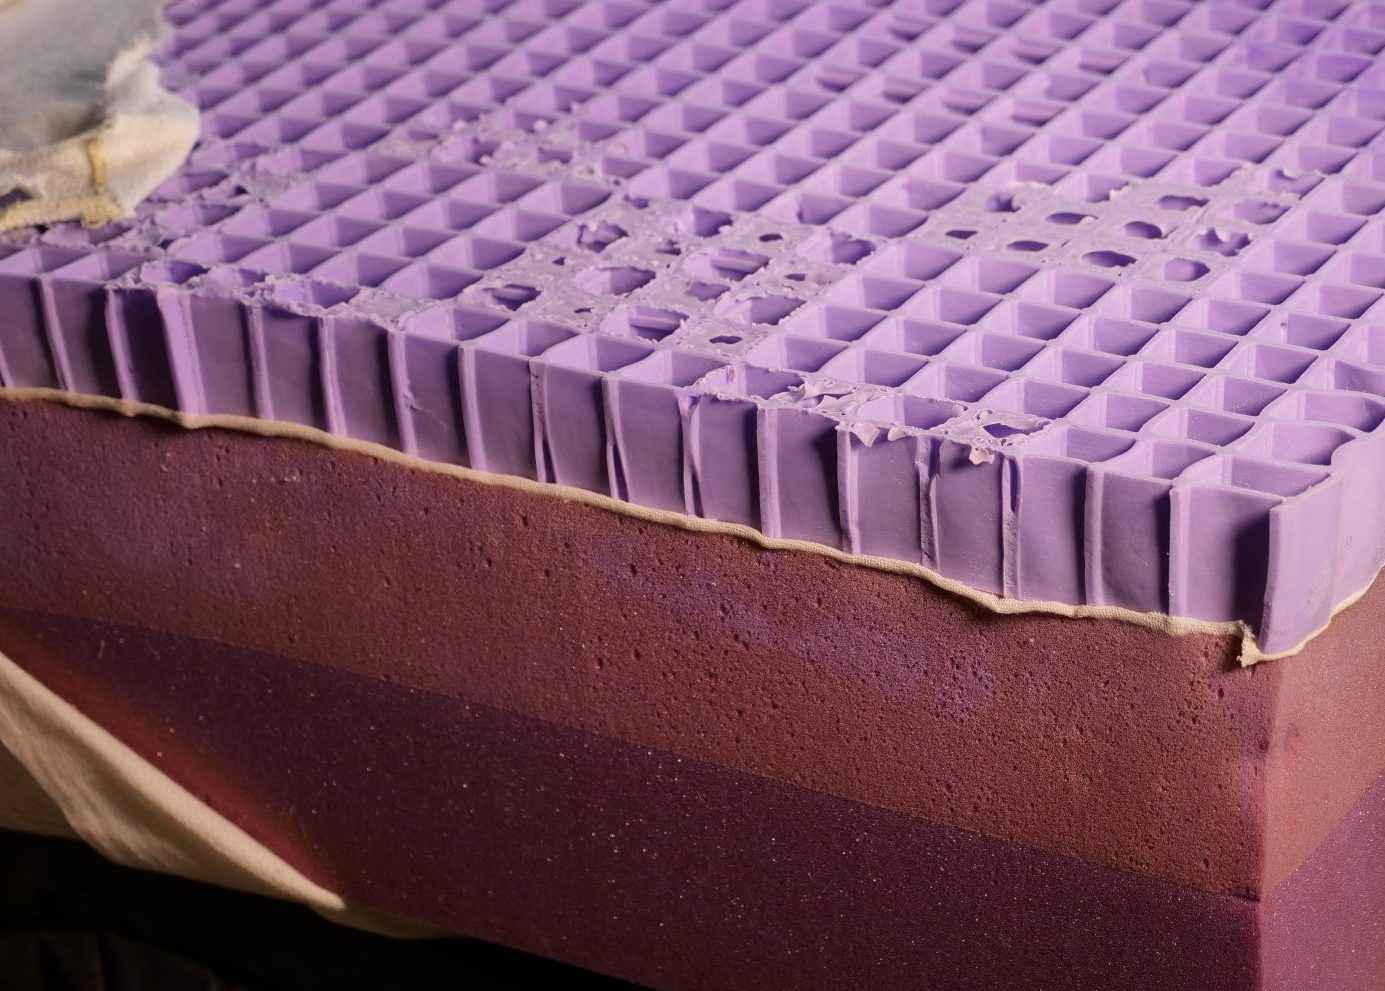 Purple Mattress Review Purple mattress reviews, Mattress